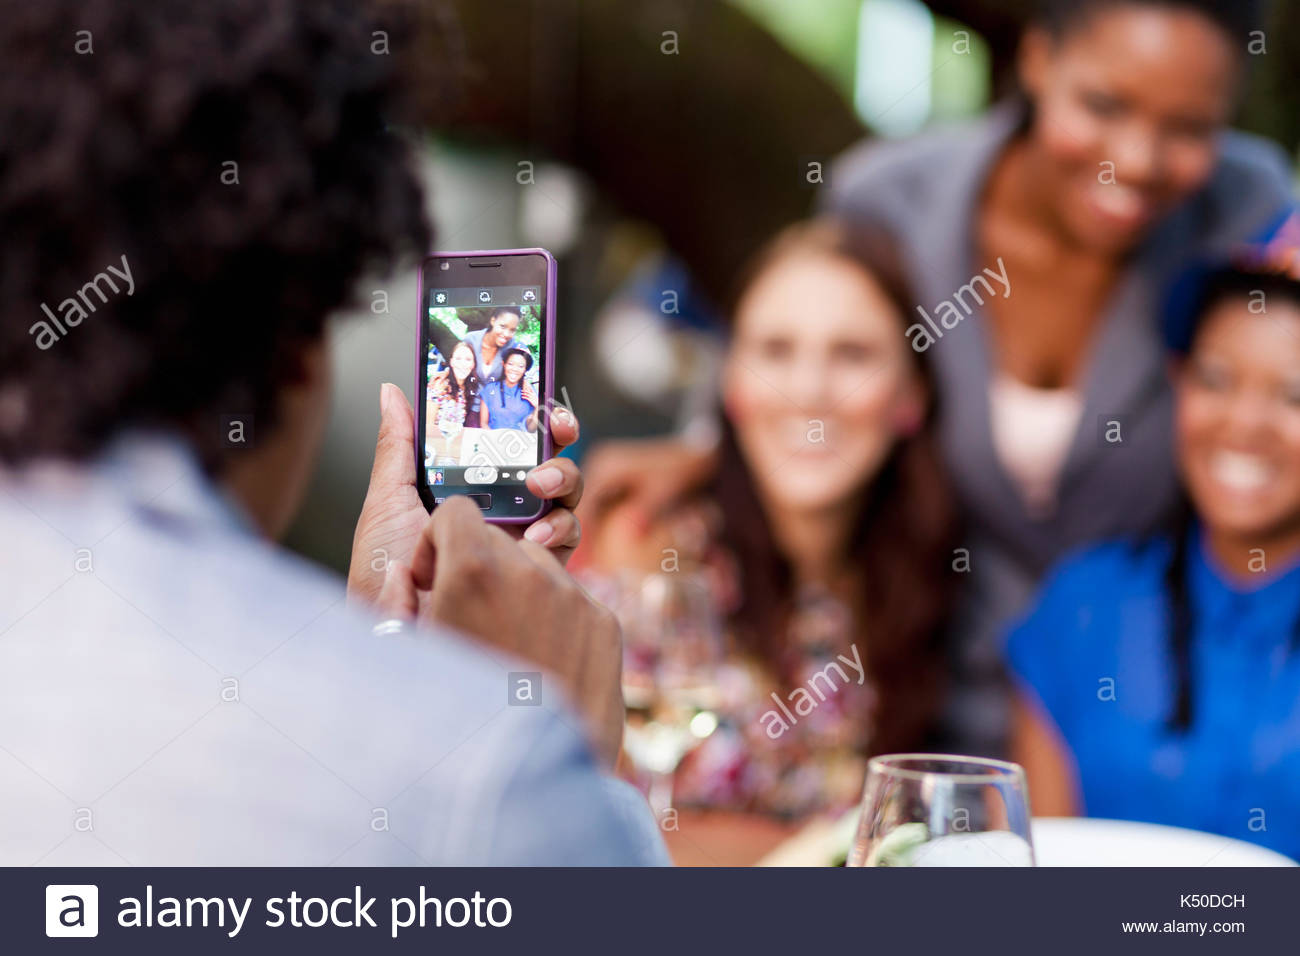 Man taking a photo of three friends with his cellphone - Stock Image